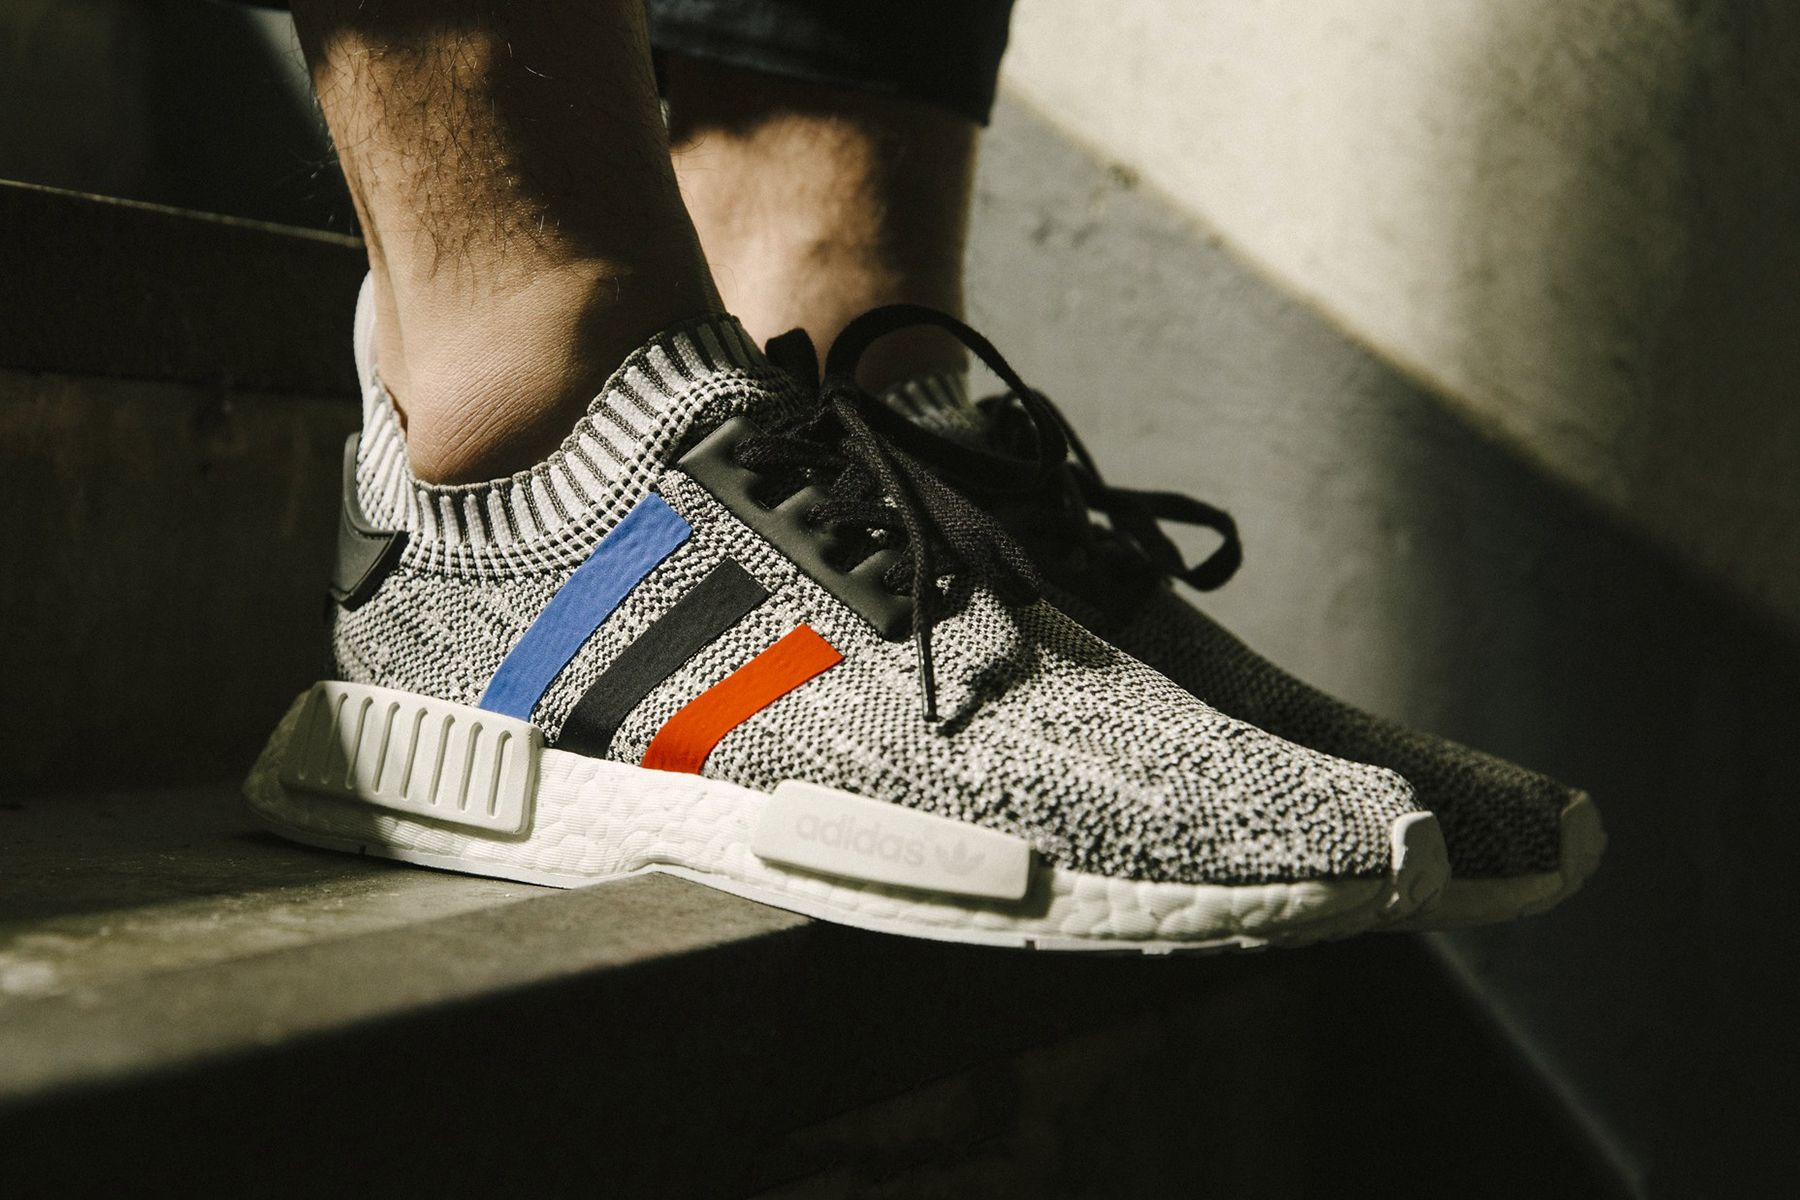 A Closer Look At The Adidas Nmd R1 Tri Color Pack Adidas Nmd